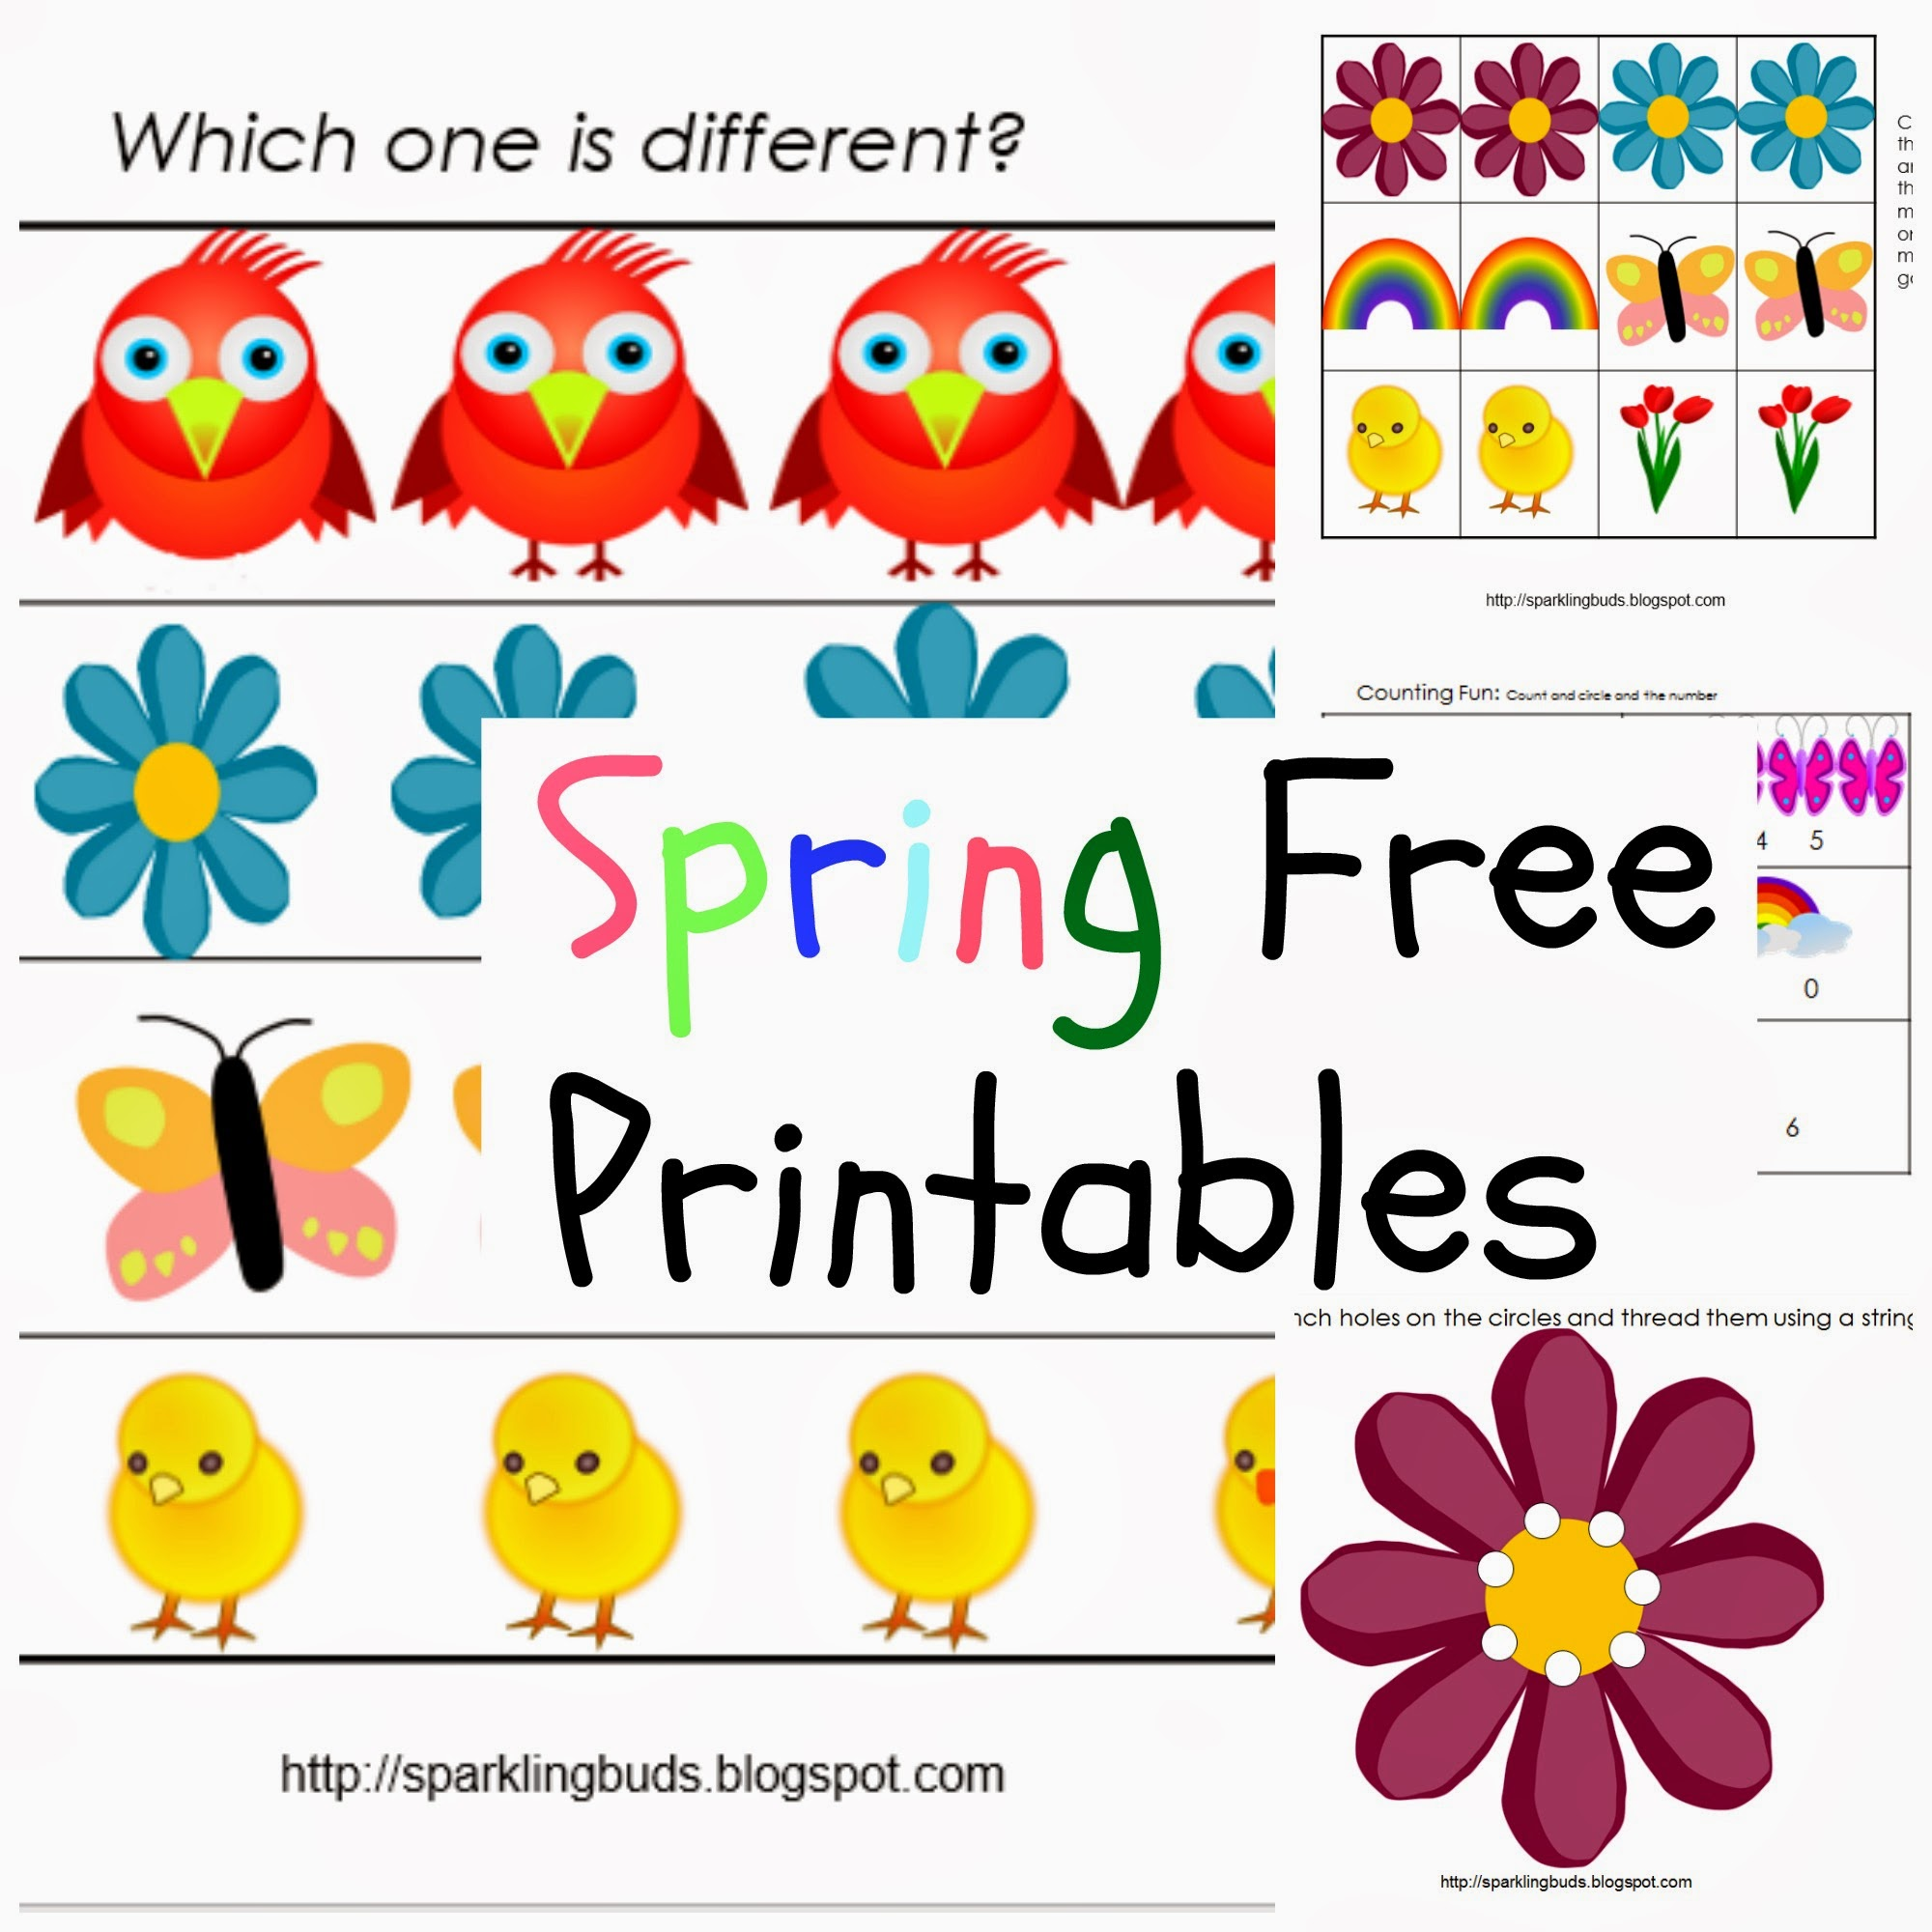 This is an image of Terrible Free Spring Printables